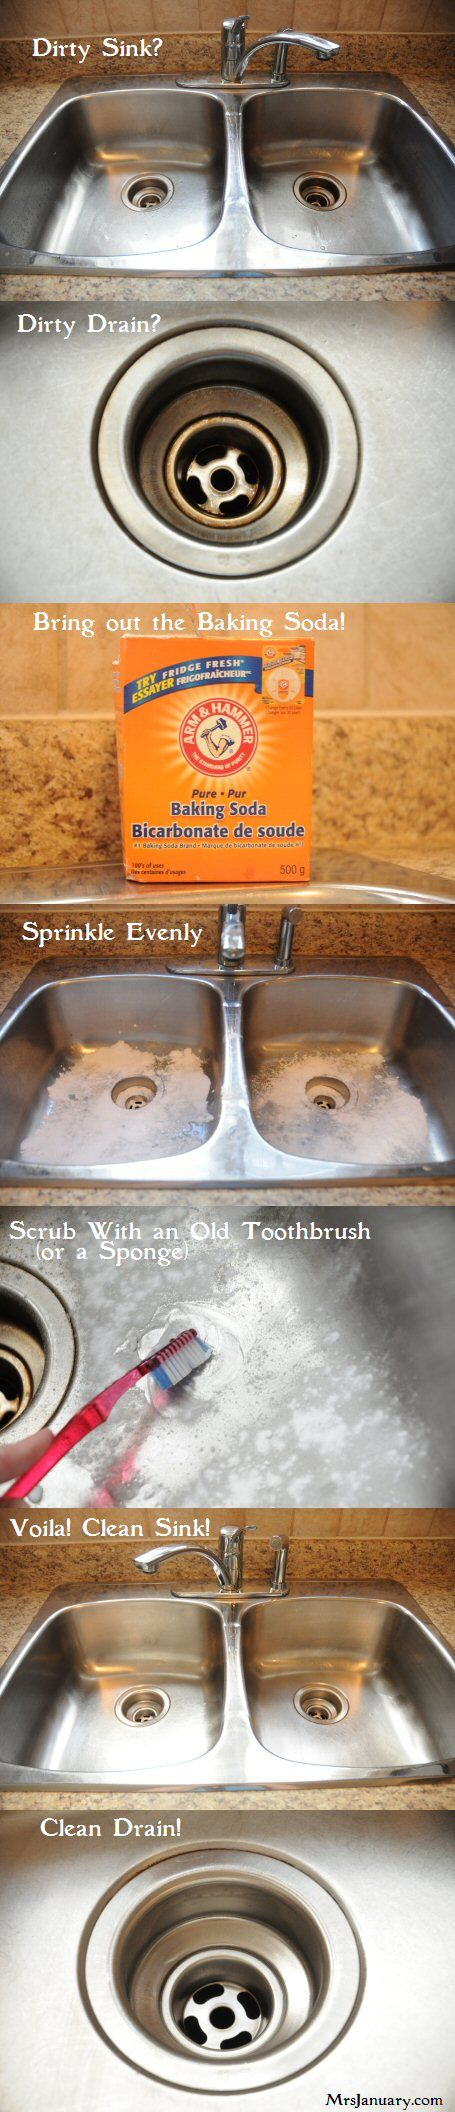 How to Shine a Stainless Steel Sink